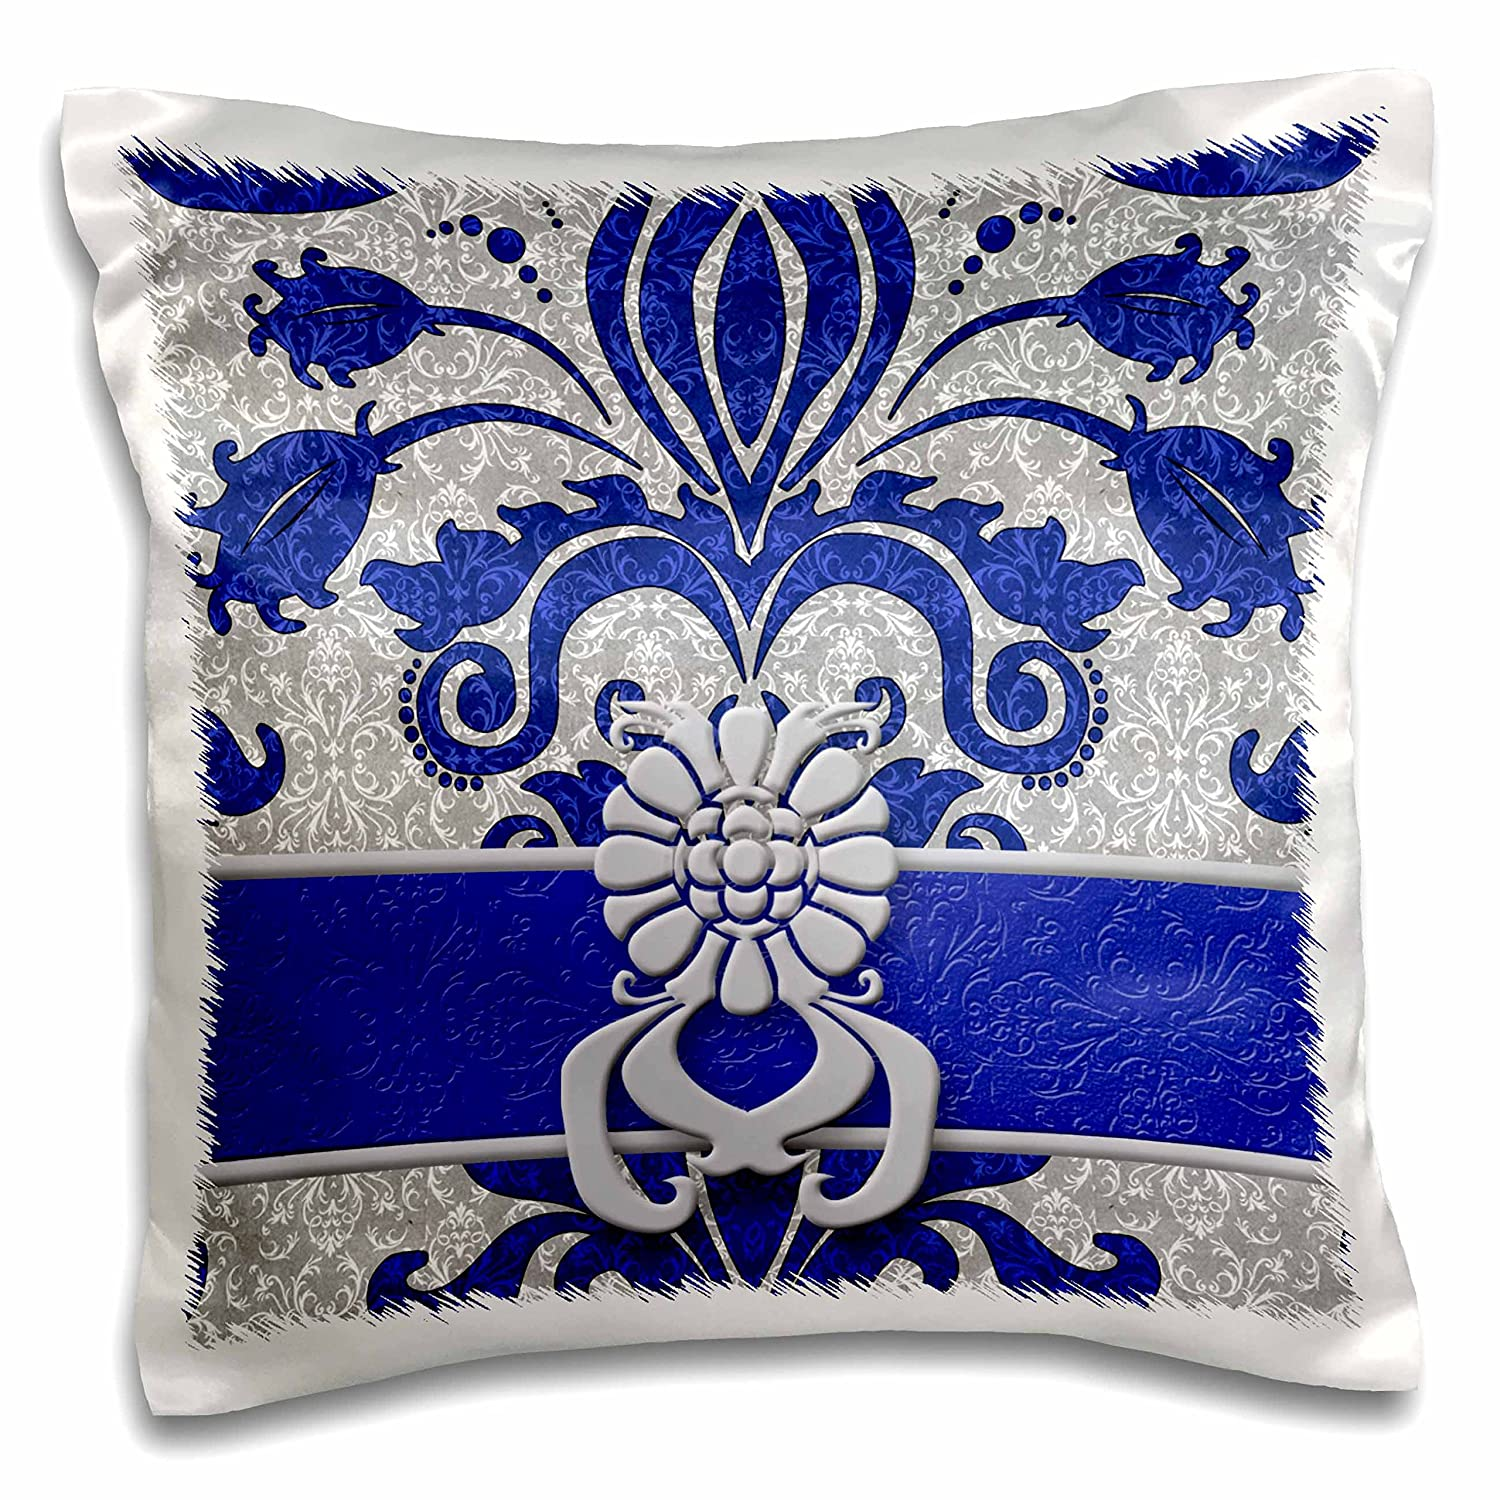 3D Rose pc_15450_1 Damask Royal Blue and Silver